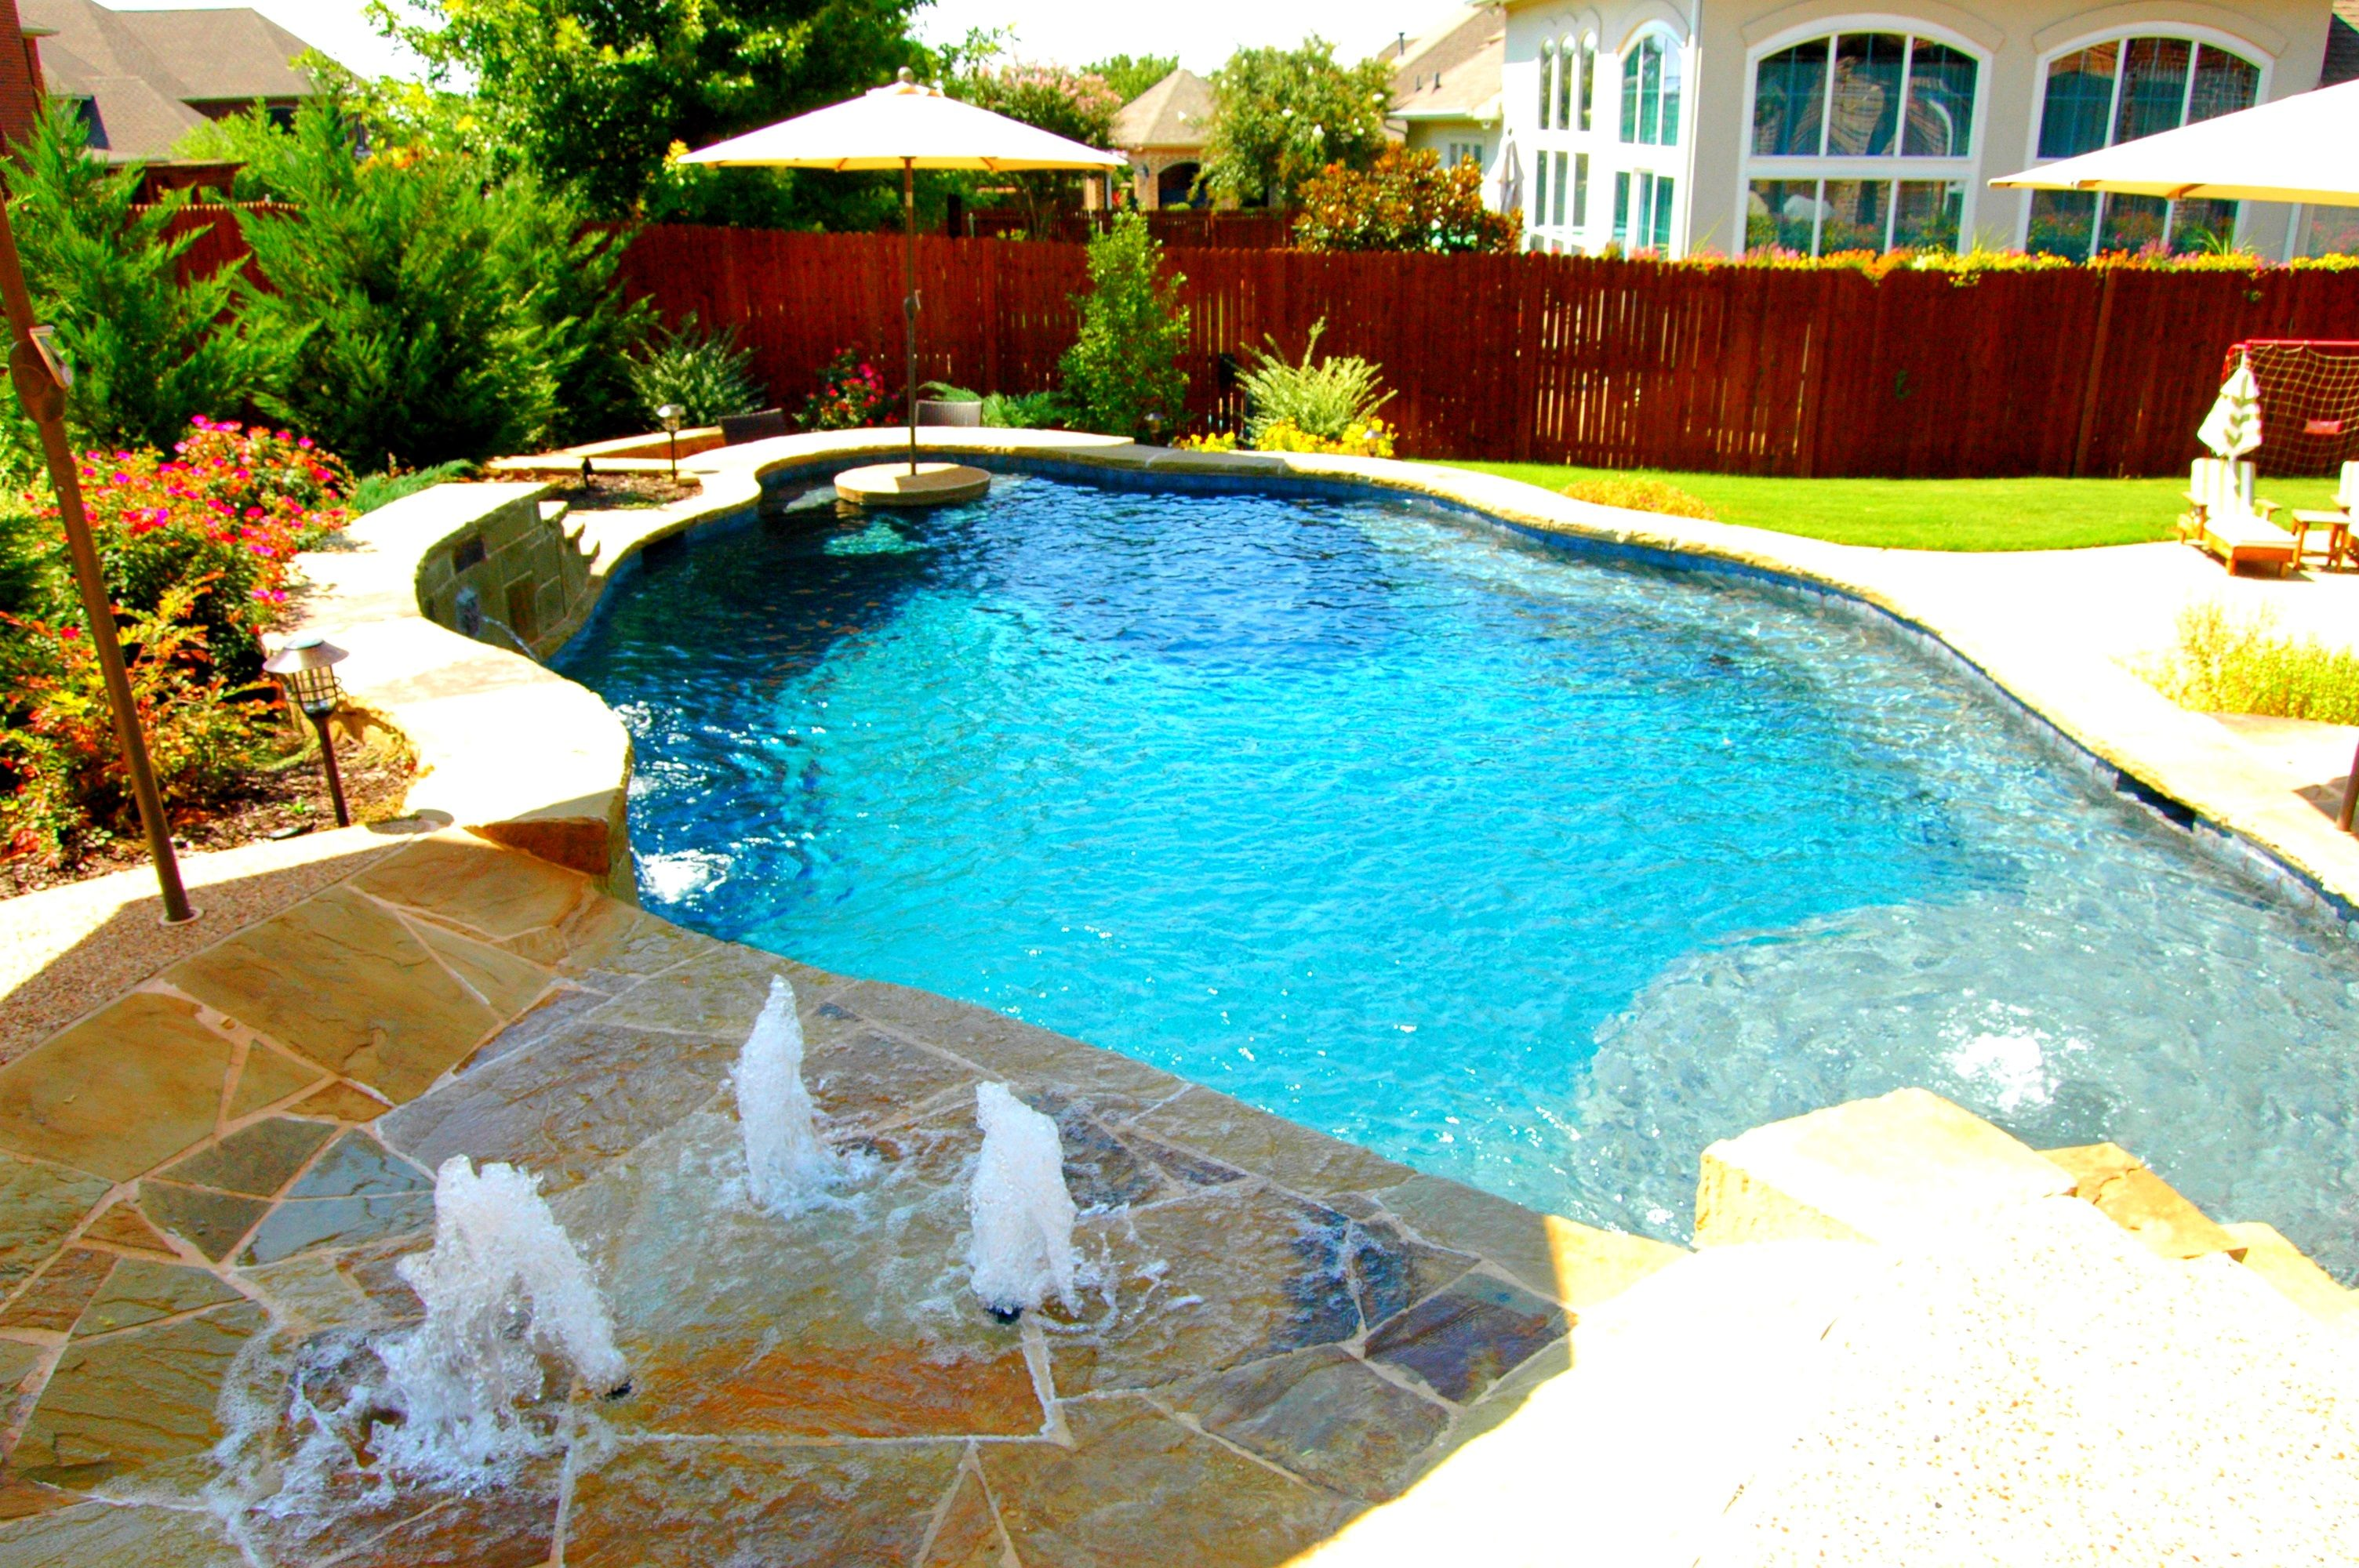 Another Stunning Example Of A Freeform Pool With Tequila Table And Splash Pad By Dallas Fort